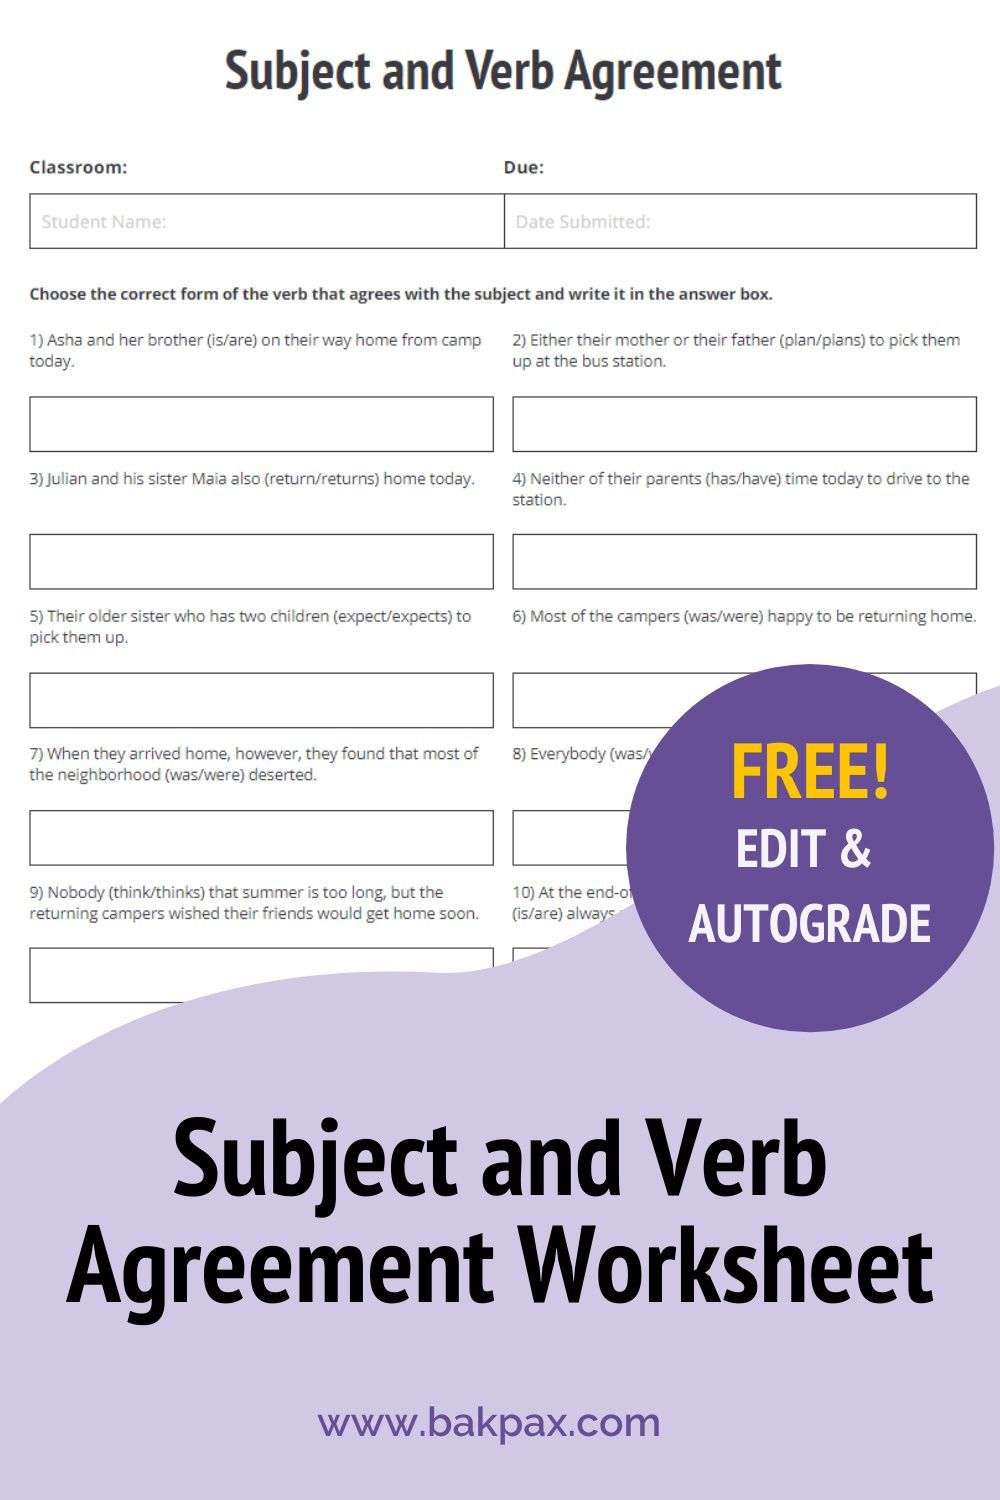 Free Subject And Verb Agreement English Worksheet Subject And Verb Free English Worksheets Language Arts Worksheets [ 1500 x 1000 Pixel ]